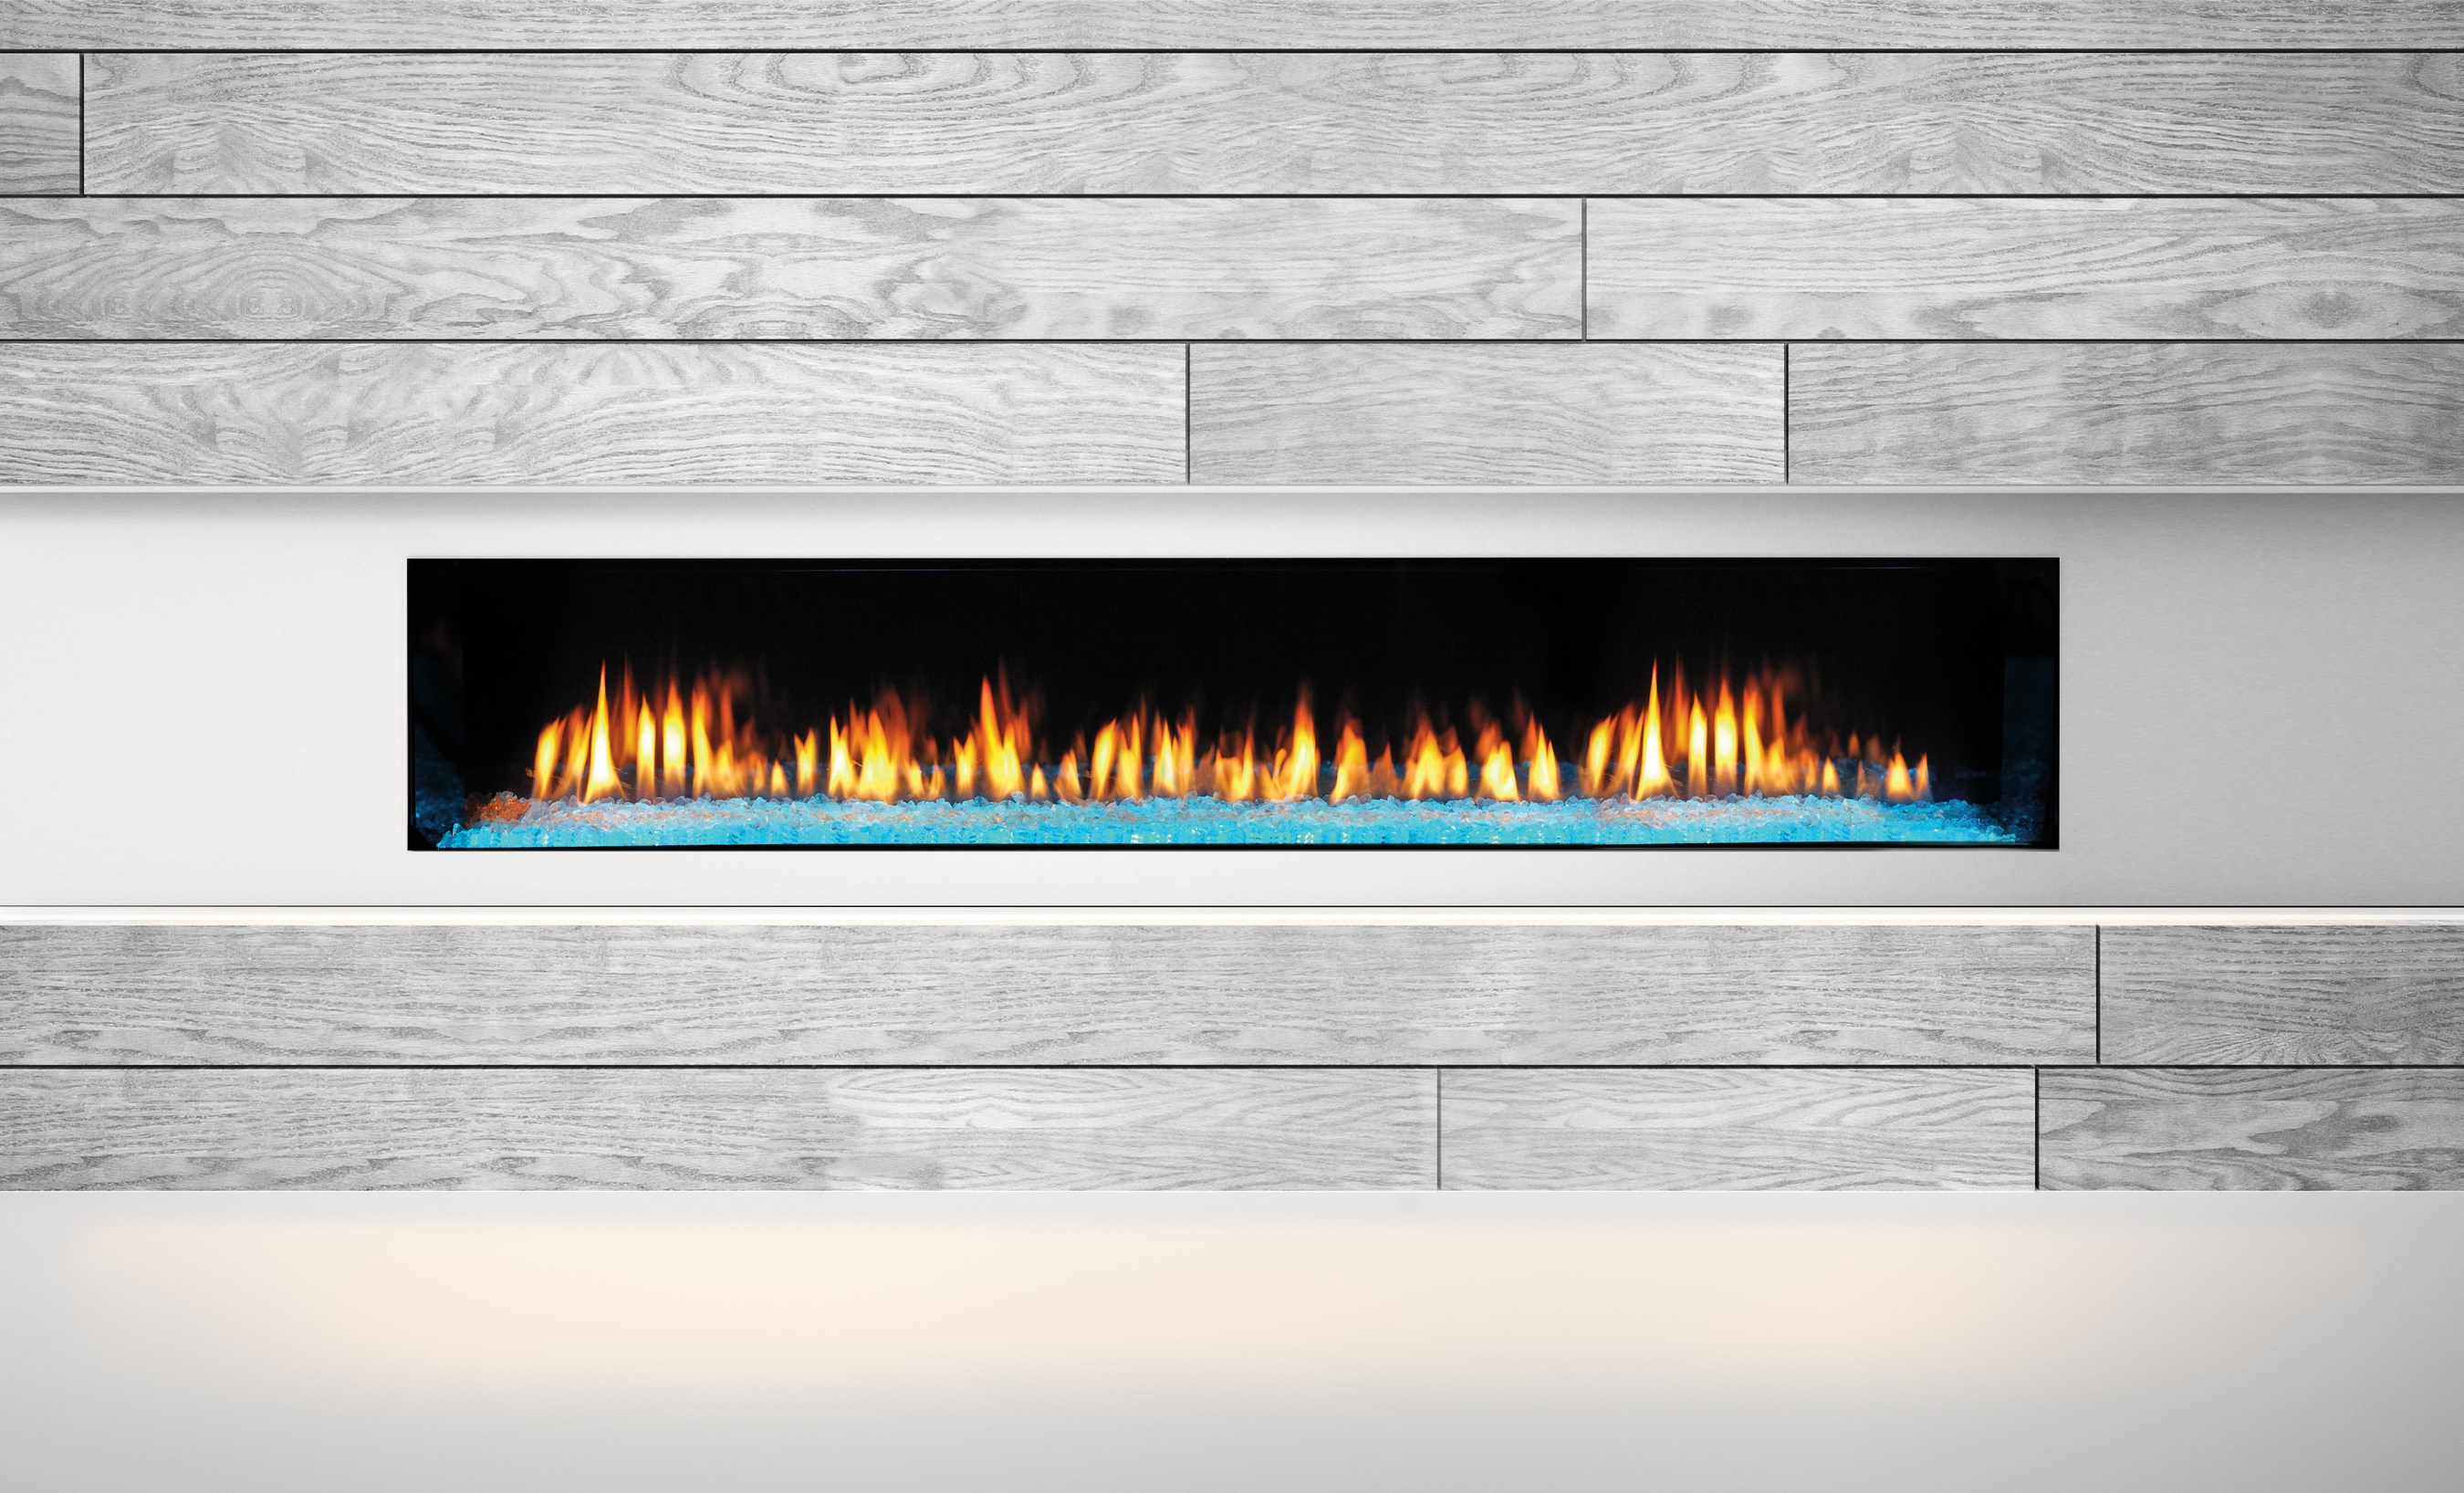 A sophisticated take on contemporary styling, the Heat & Glo PRIMO gas fireplace gives homeowners complete design freedom. Zero restrictions on finishing materials - including barnwood - eliminate concerns of overheating or safety hazards and offer the ability to safely hang a TV or valuable art above the fireplace for a completely custom look. Plus, the PRIMO features exclusive PowerFlow(TM) Heat Management Technology, which provides heat and flame control at the flip of a switch, allowing homeowners to comfortably enjoy the ambiance and beauty of a fireplace year-round.